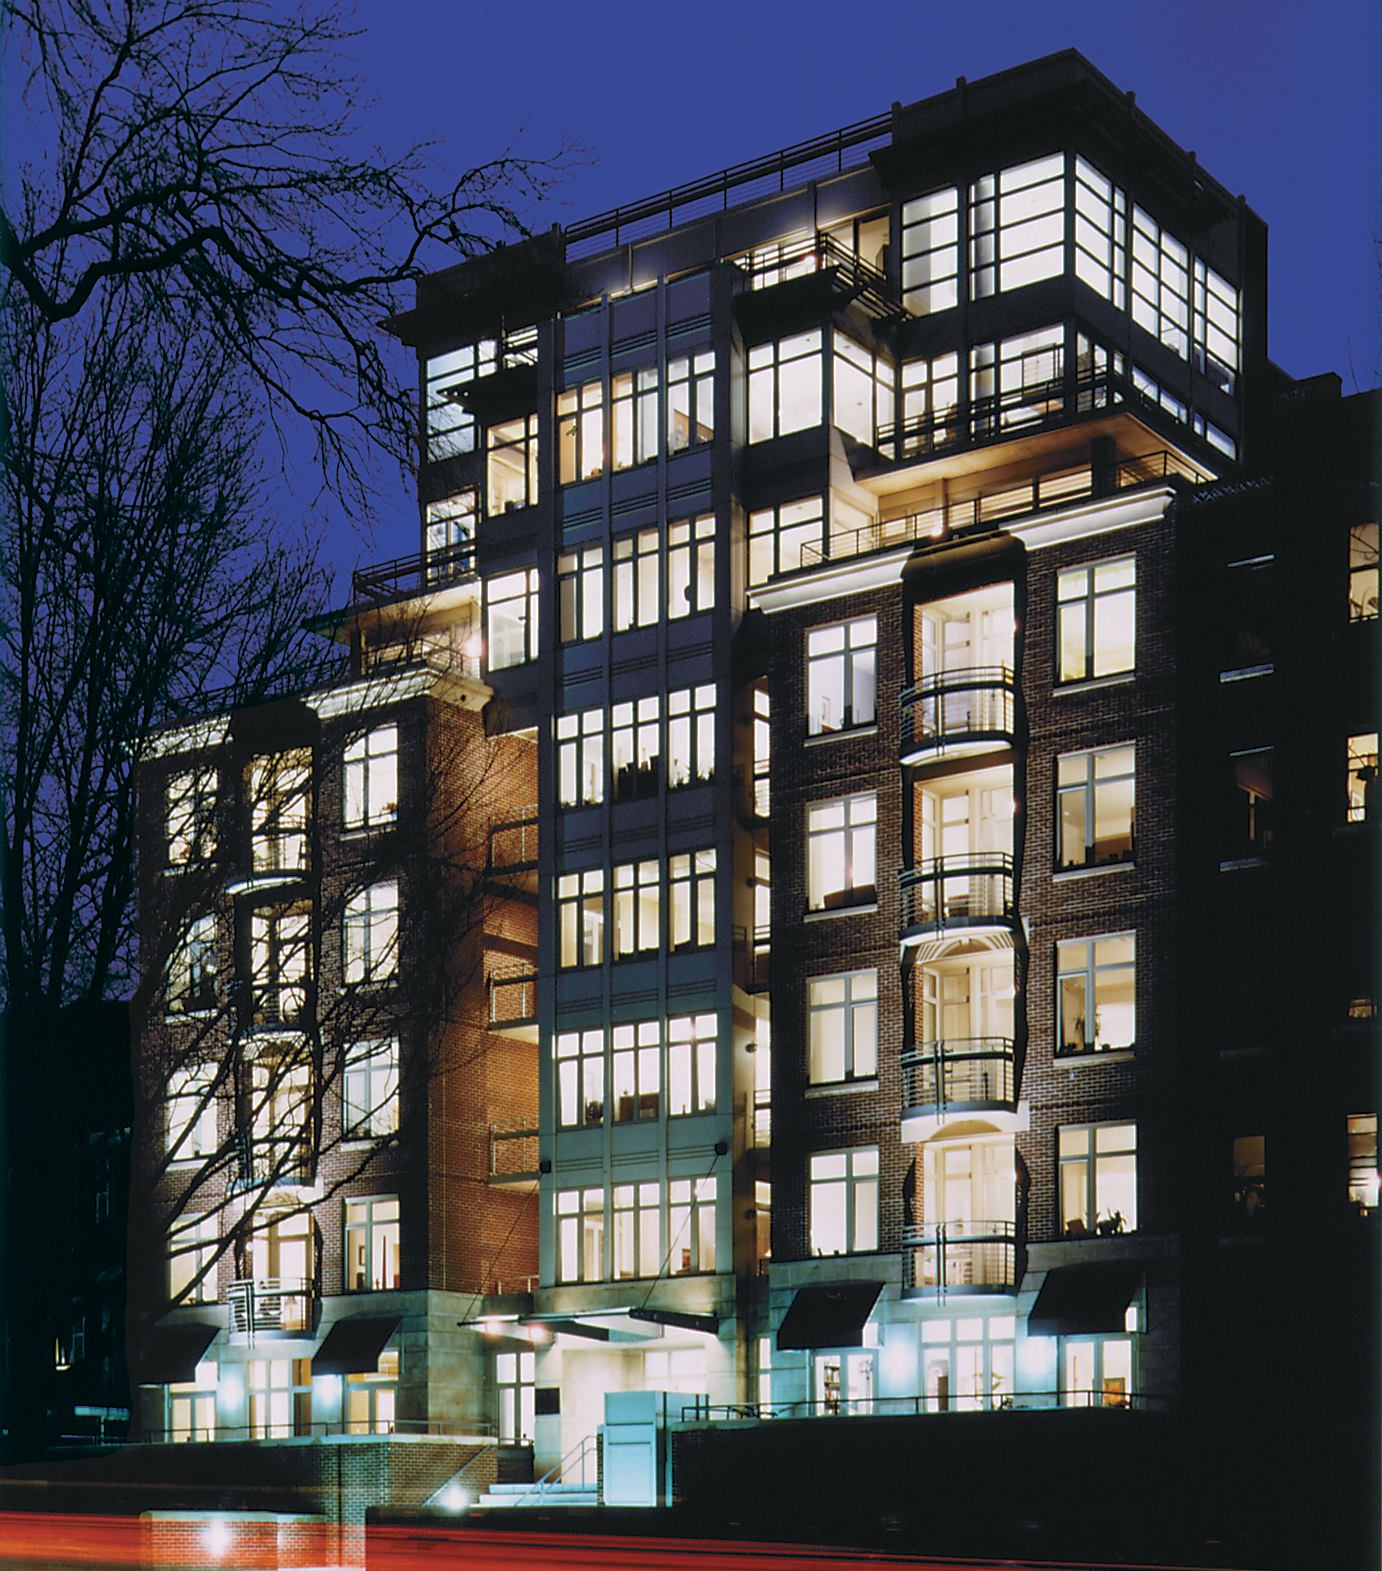 Park hill north condominiums washington d c for Residential architect design awards